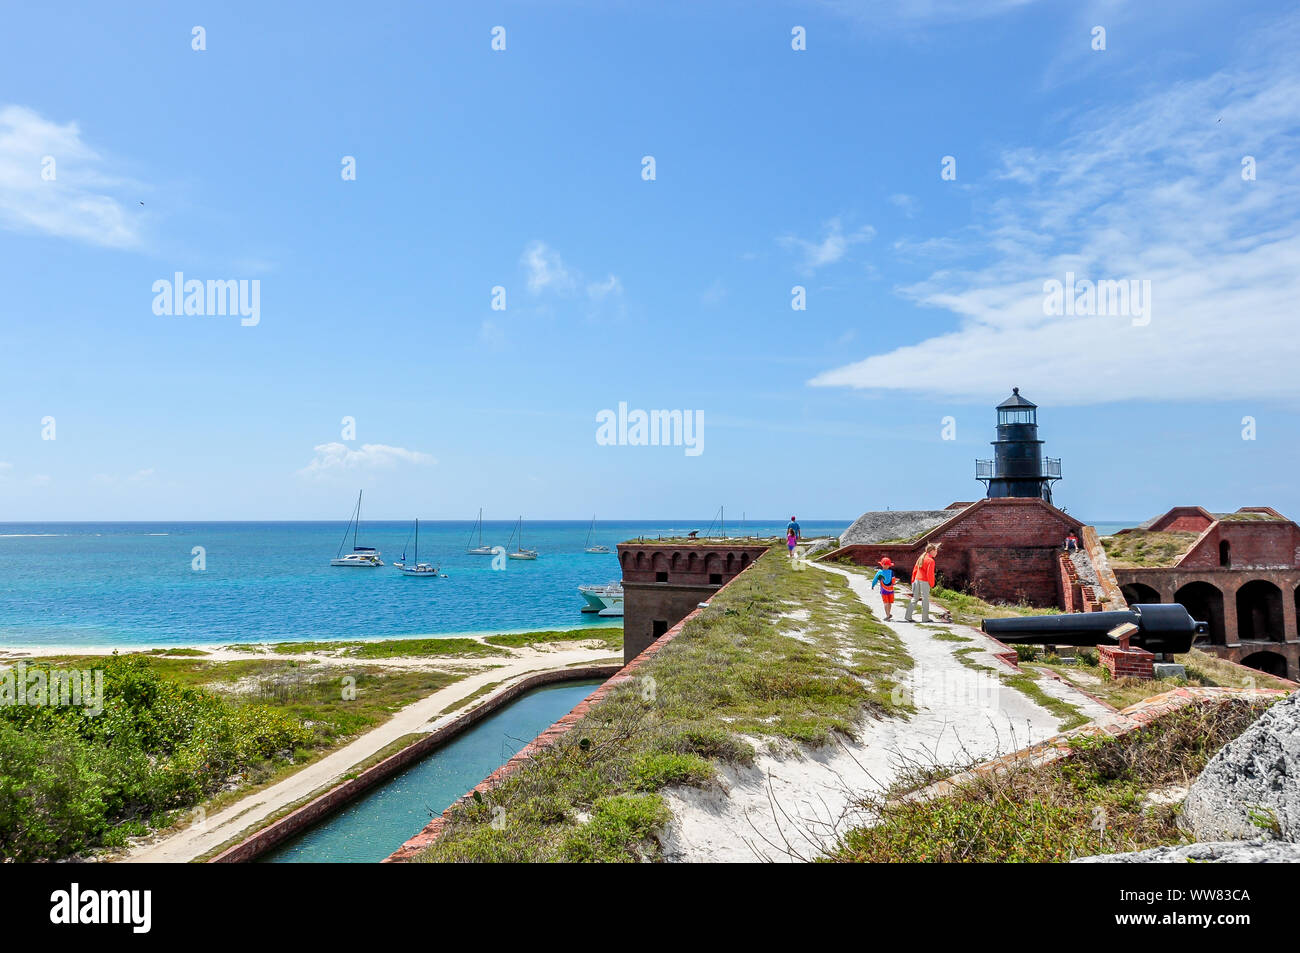 Kids explore Fort Jefferson at Dry Tortugas National Park with their father, walking along the roof with view of lighthouse, water and sailboats. Stock Photo